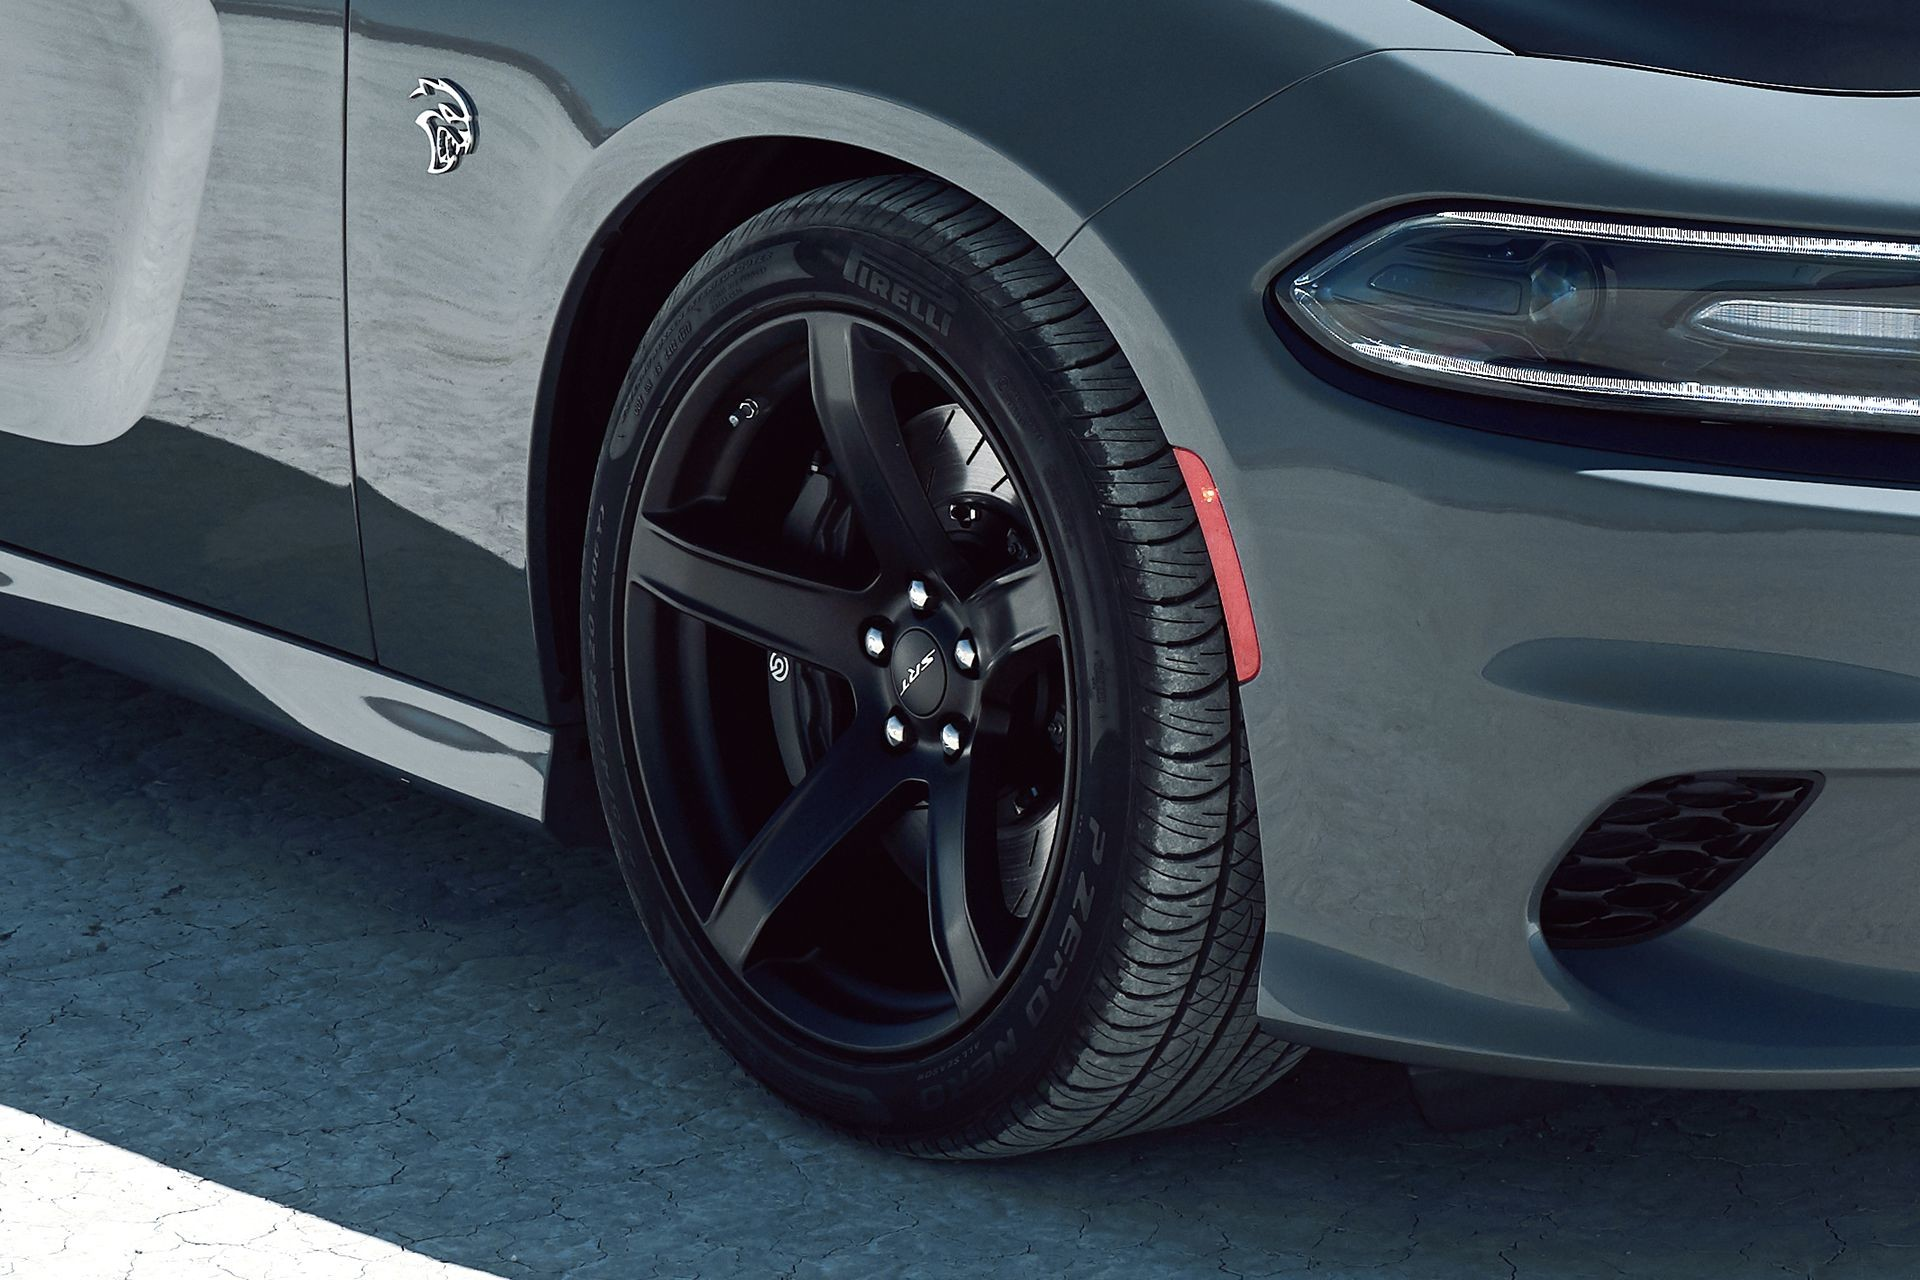 2019 Dodge Charger outstanding wheel selection